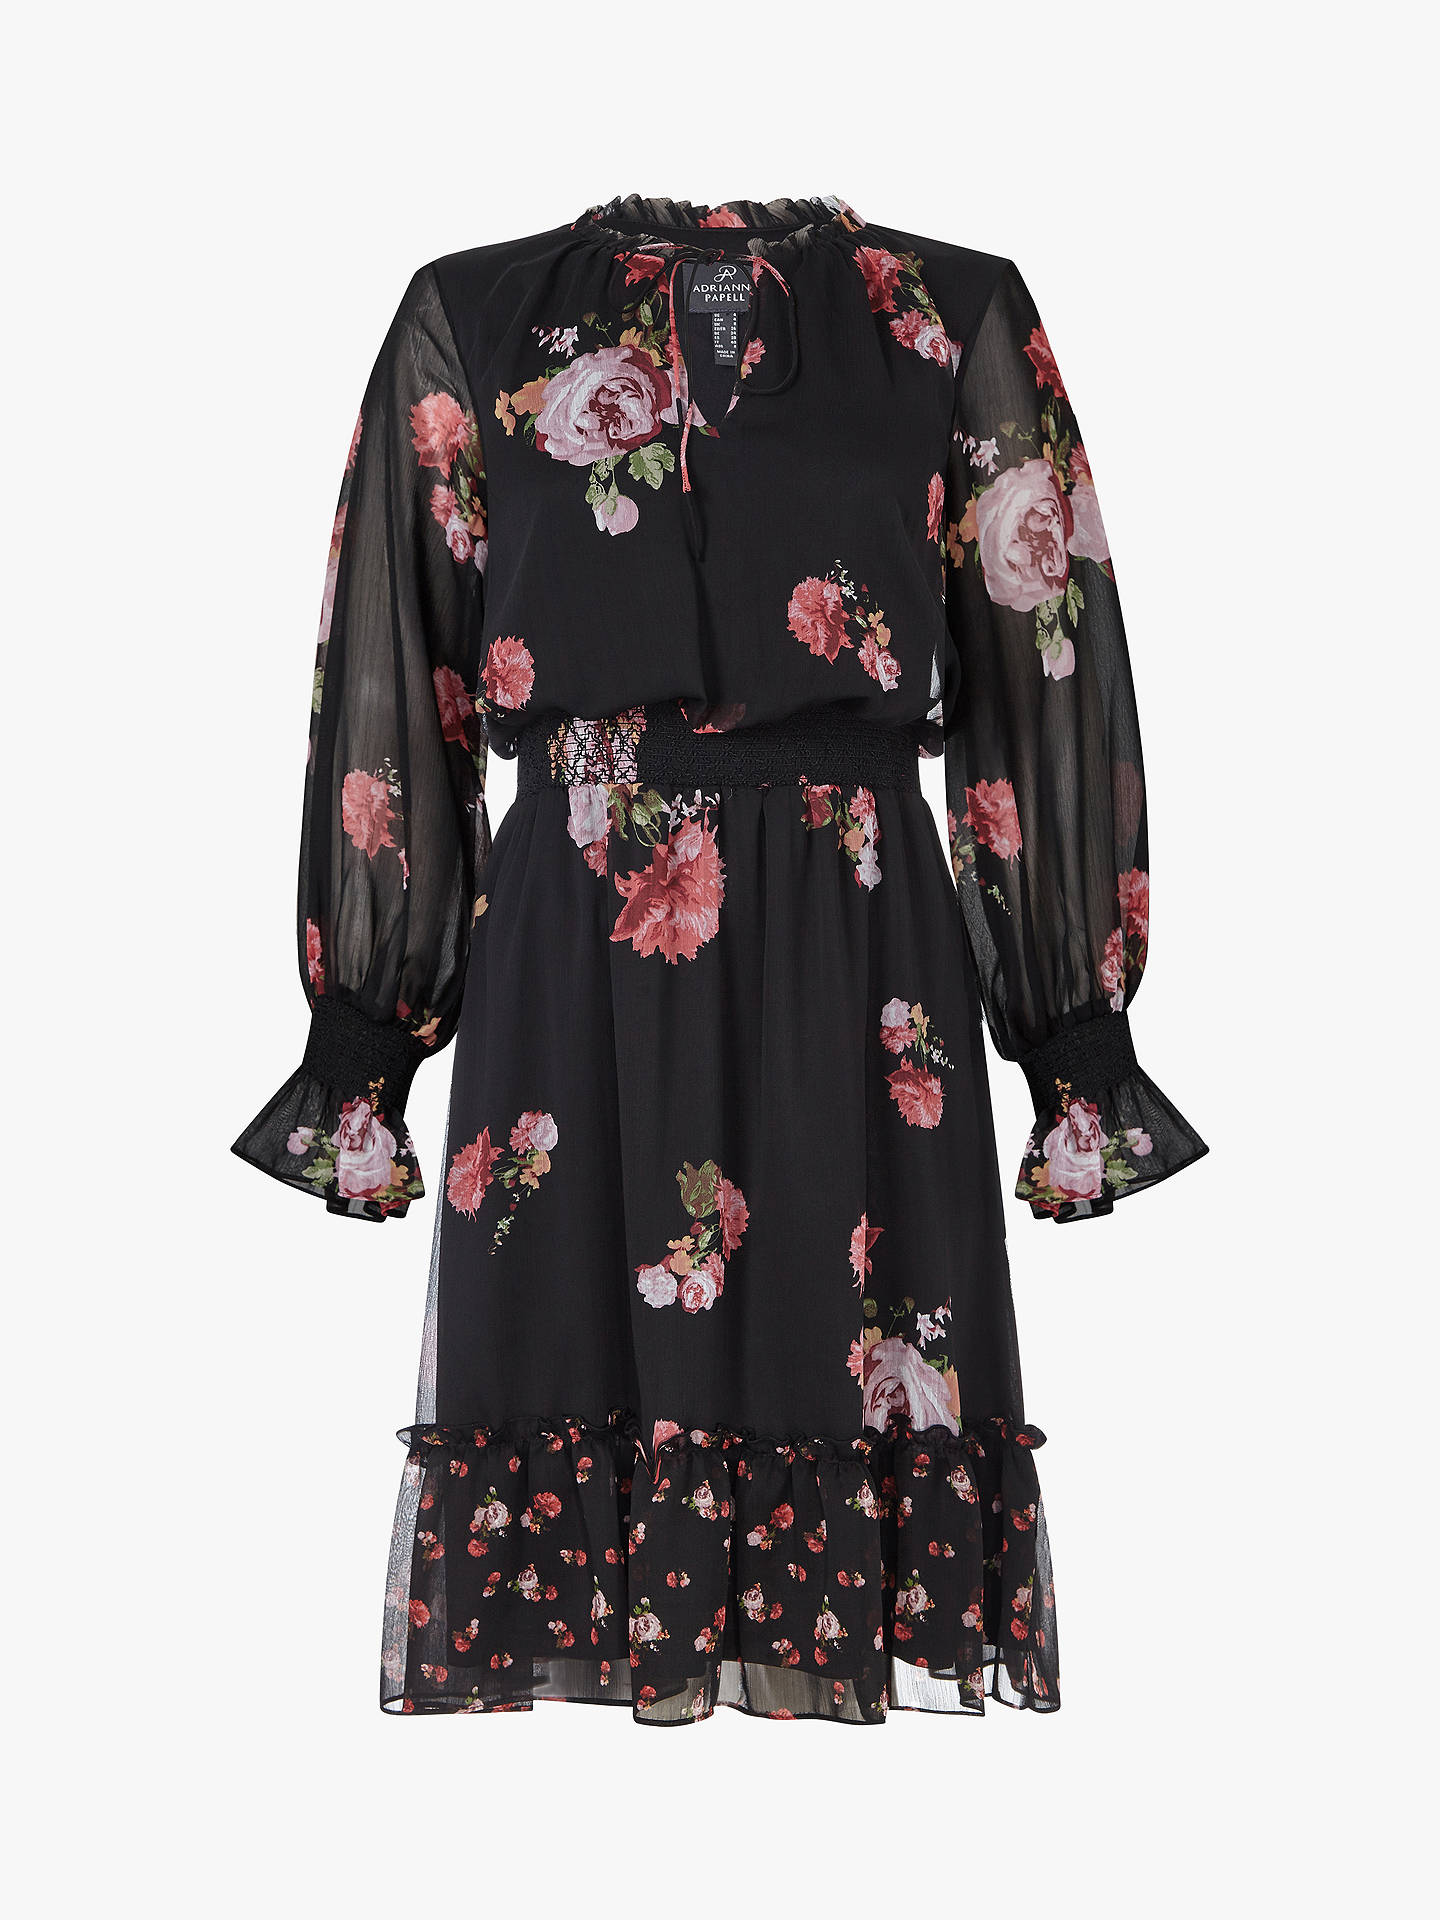 Buy Adrianna Papell Loving Boho Floral Print Dress, Multi, 12 Online at johnlewis.com